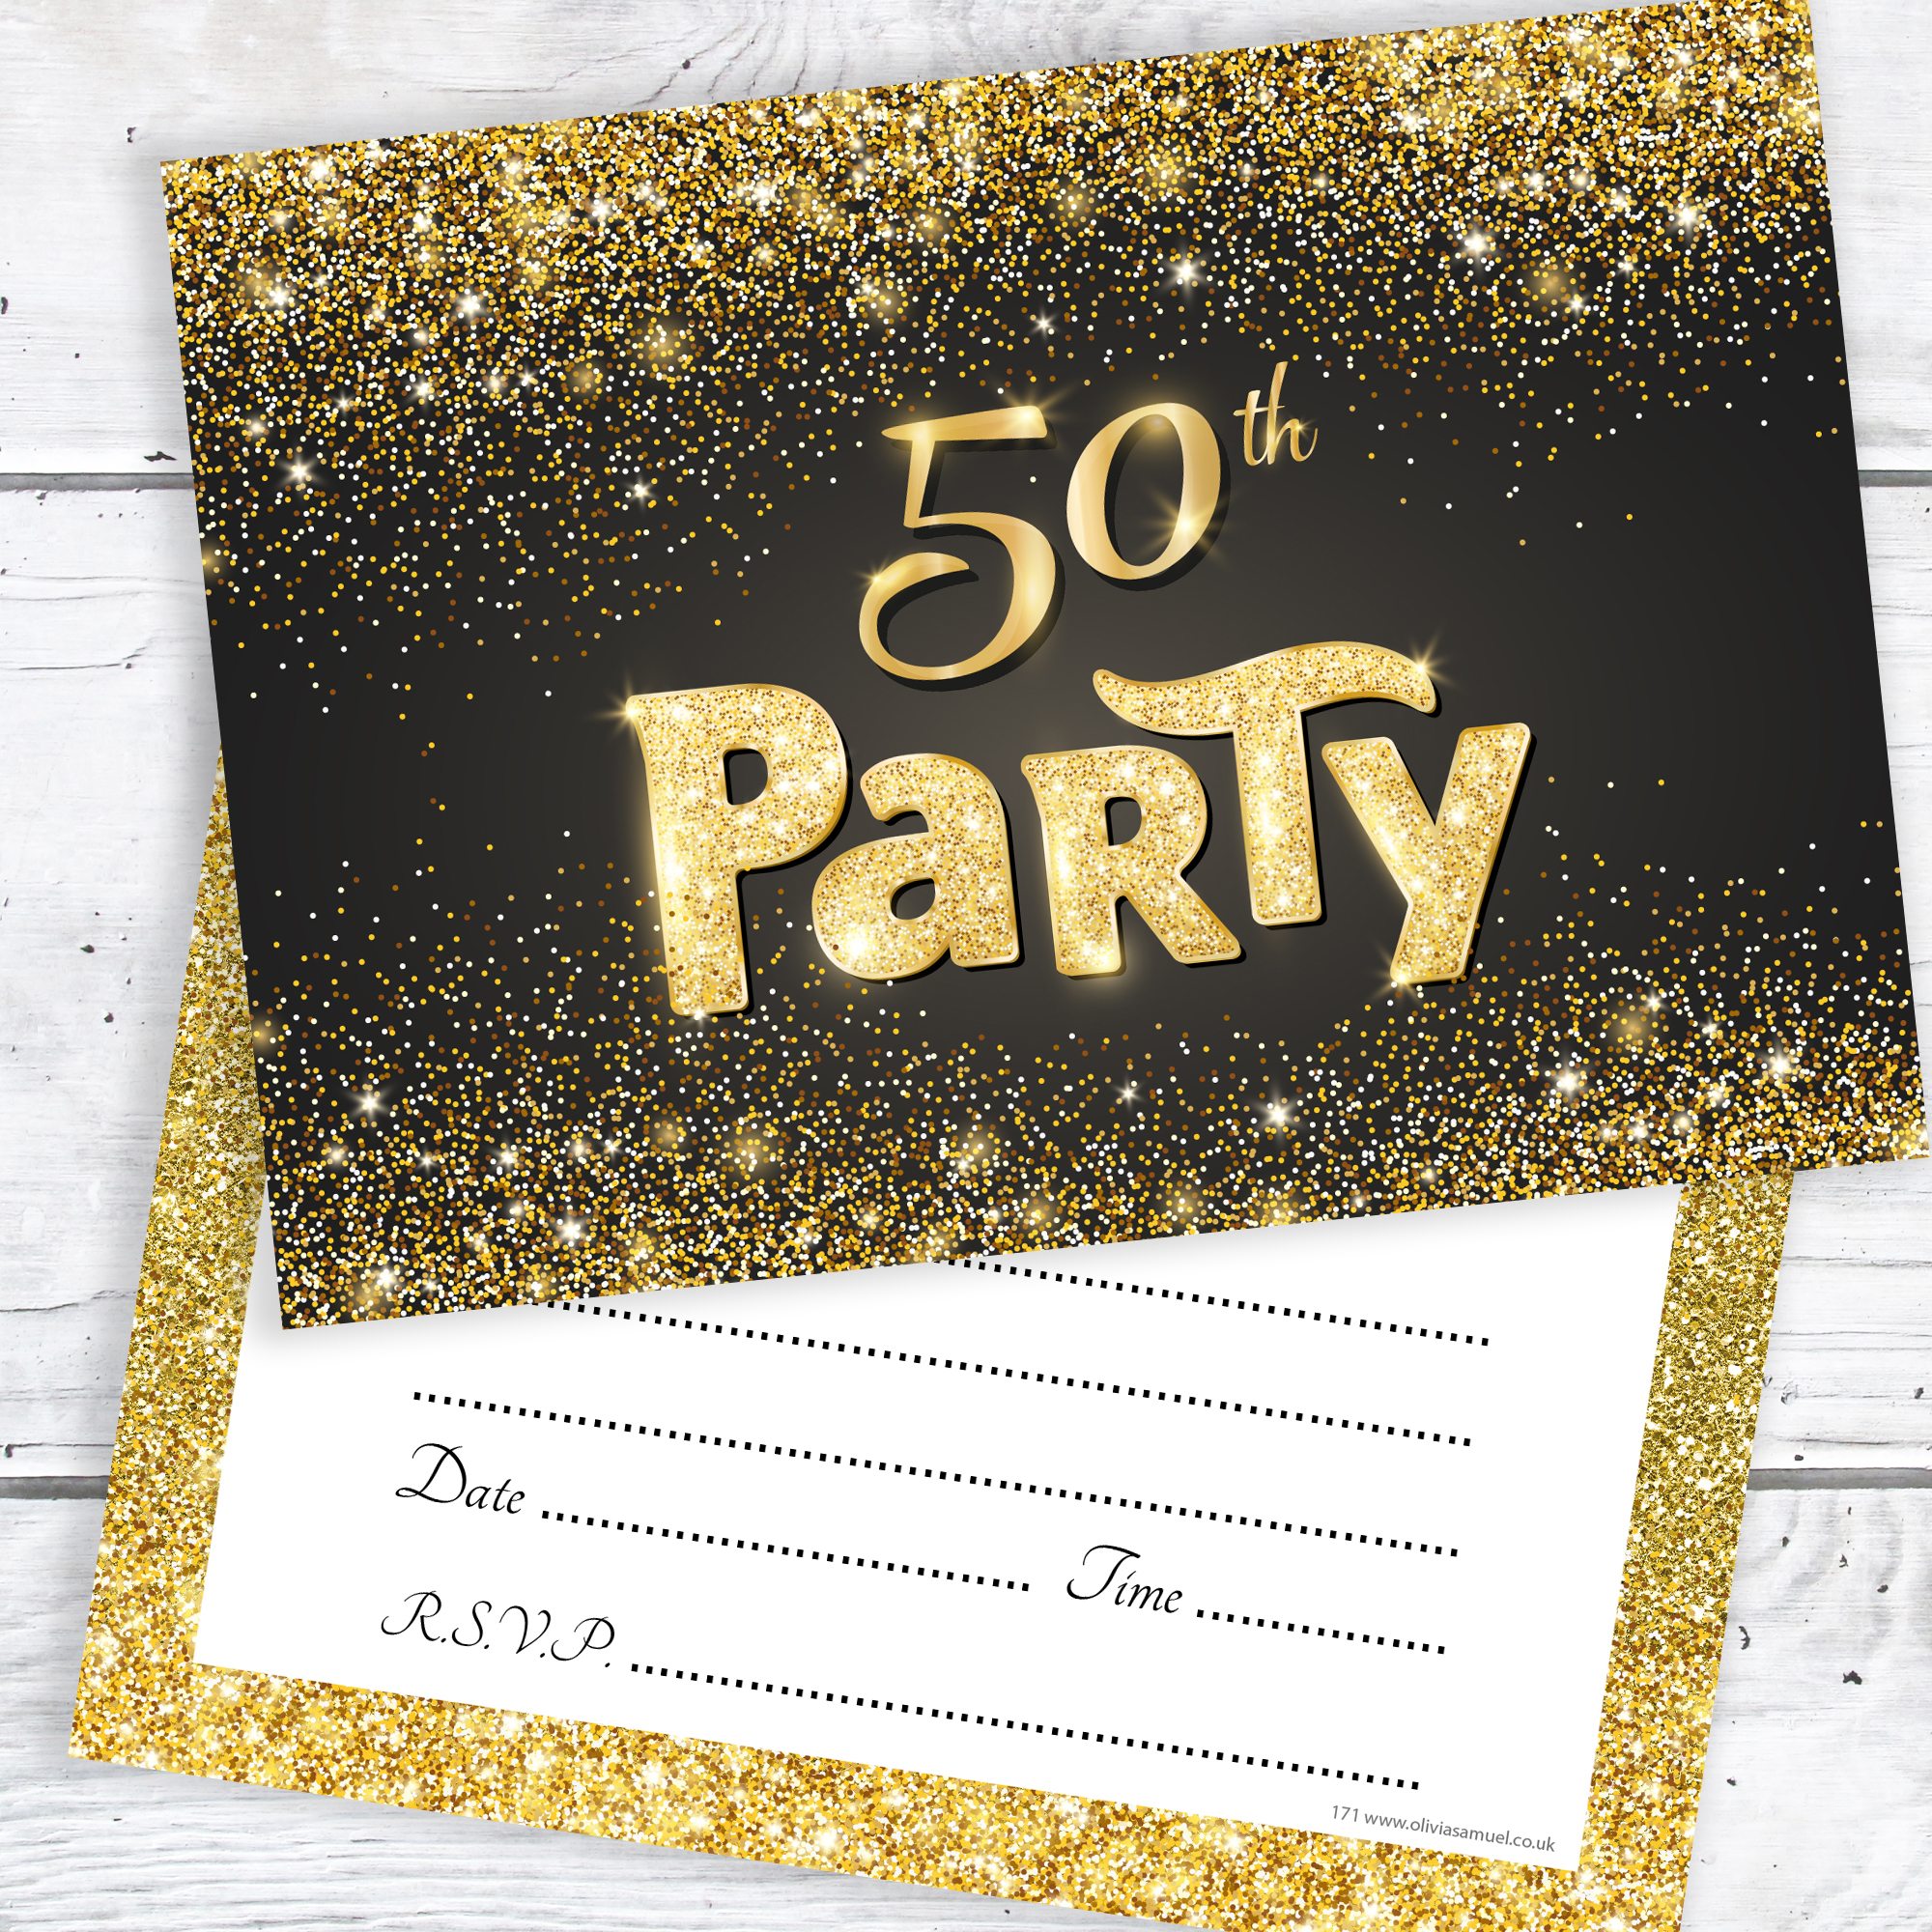 Black and gold effect 50th birthday party invitations ready to 50th birthday party invitations black and gold filmwisefo Gallery